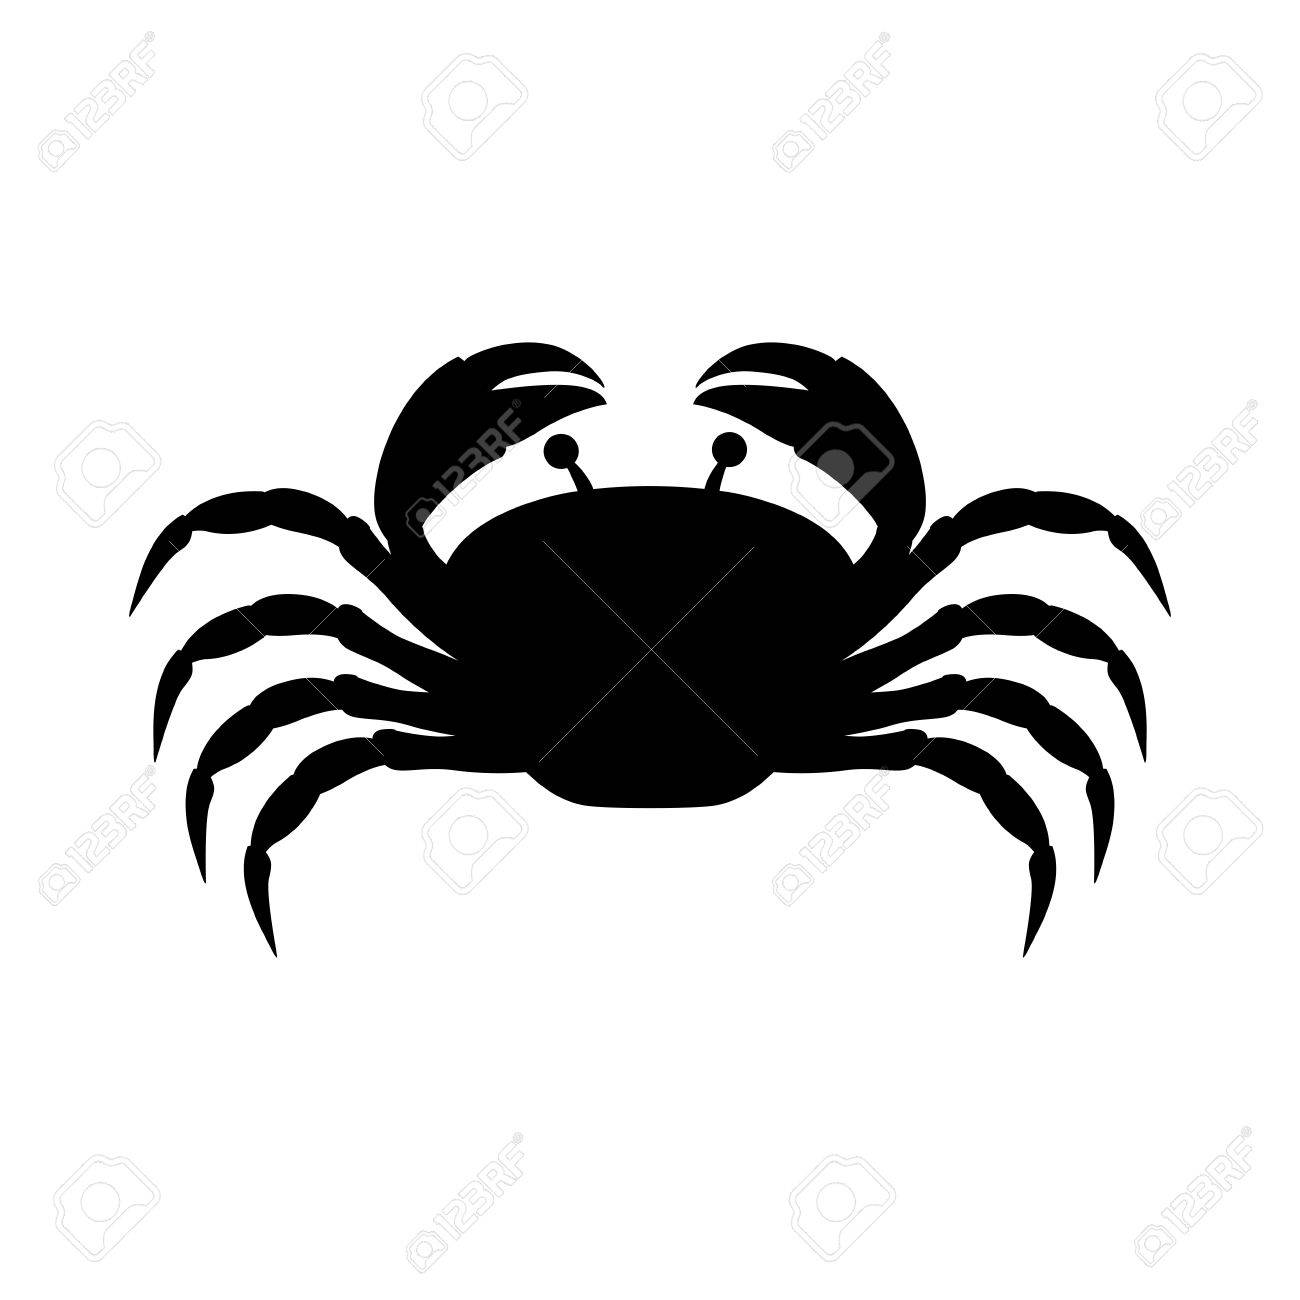 black silhouette graphic with crab vector illustration royalty free rh 123rf com crab vector free download crab vector graphic free